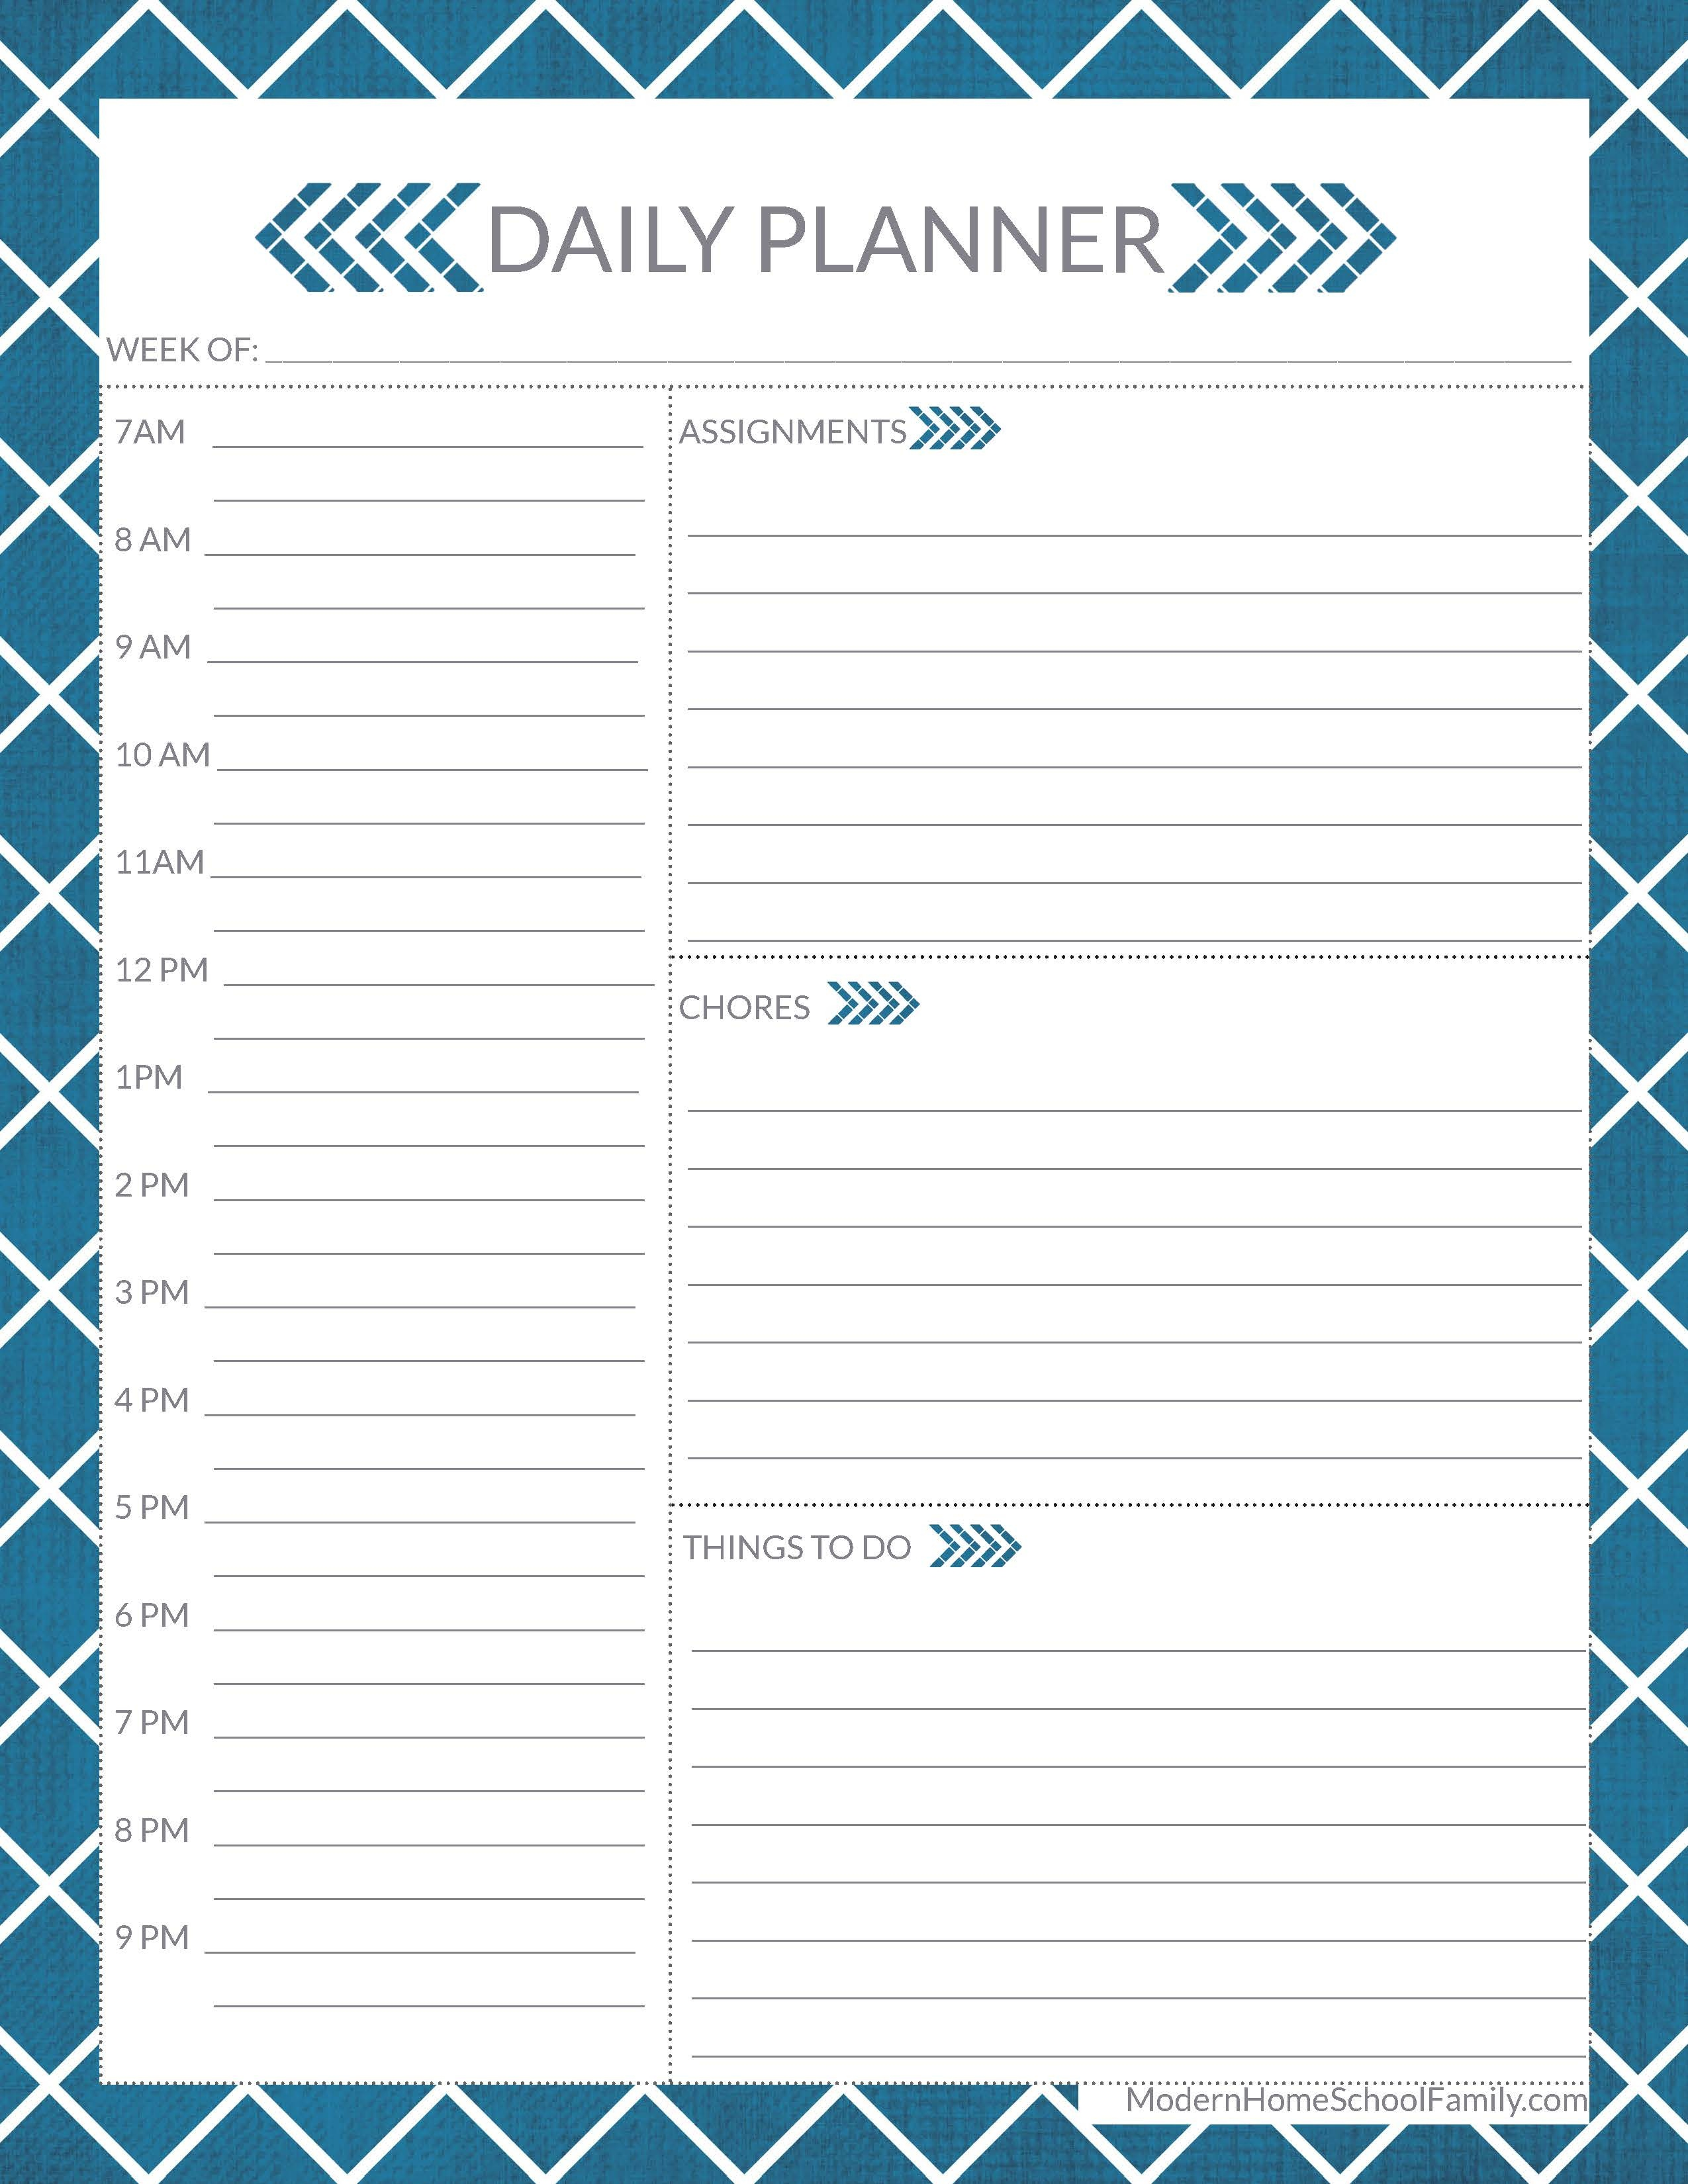 Free Homeschool Planner For High School Page - Modern Homeschool Family - Free Printable High School Worksheets